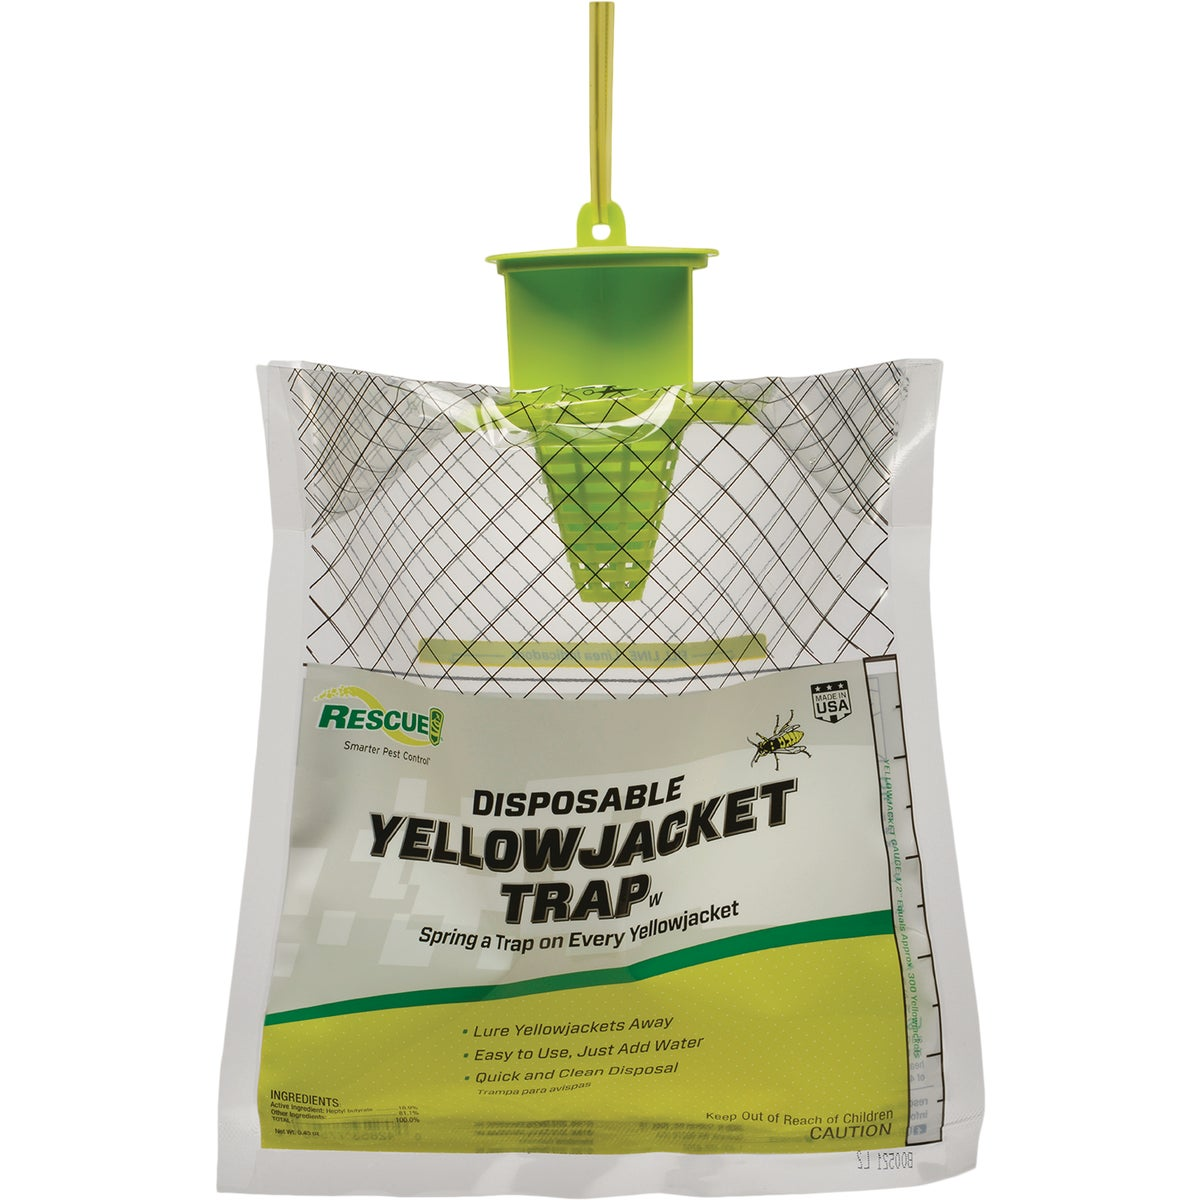 DISPOS YELLOWJACKET TRAP - YJTD-DB12-E by Sterling Intl